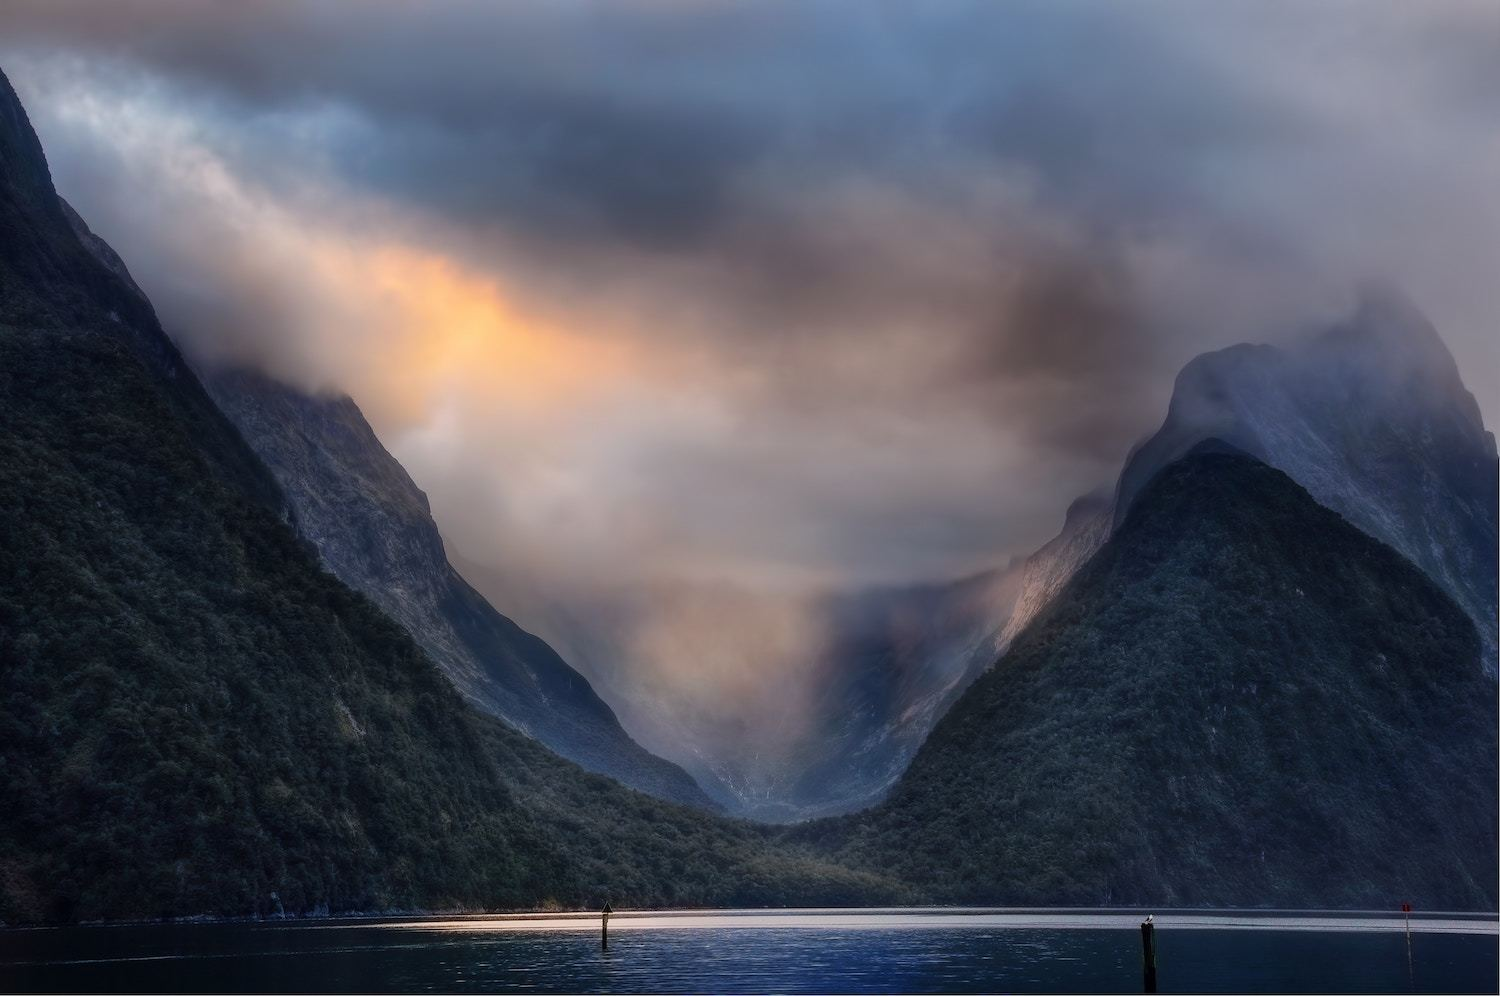 Milford Sound - Queenstown Itinerary